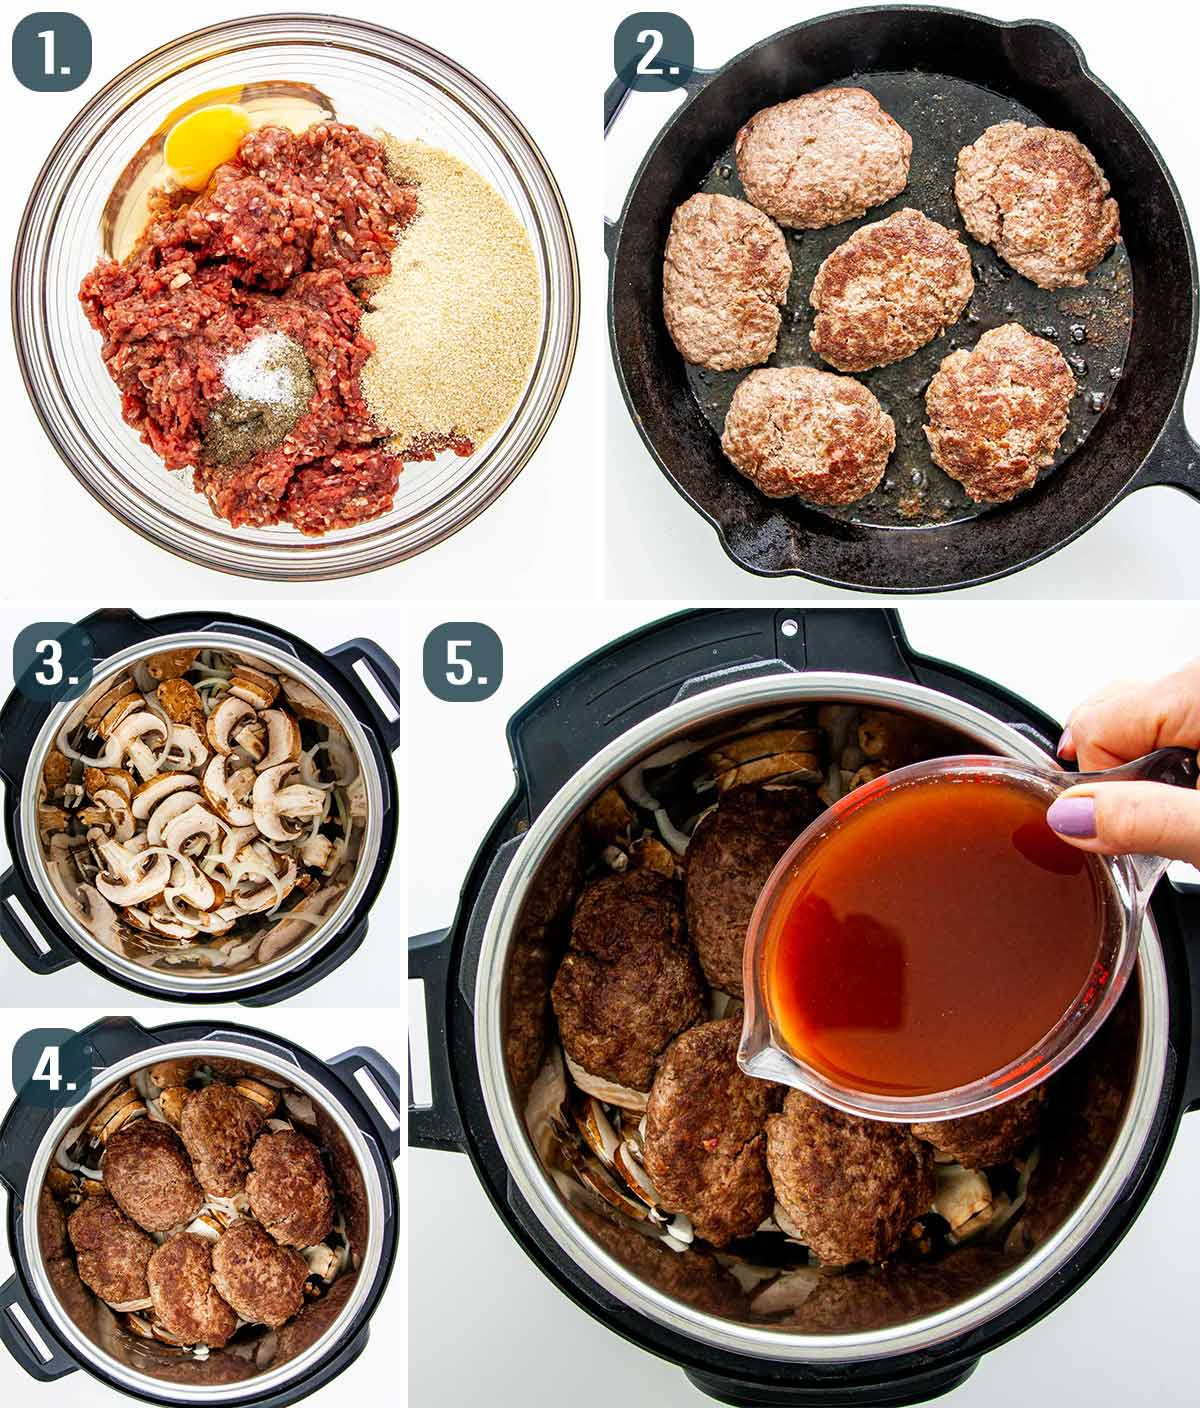 detailed process shots showing how to make instant pot salisbury steak.